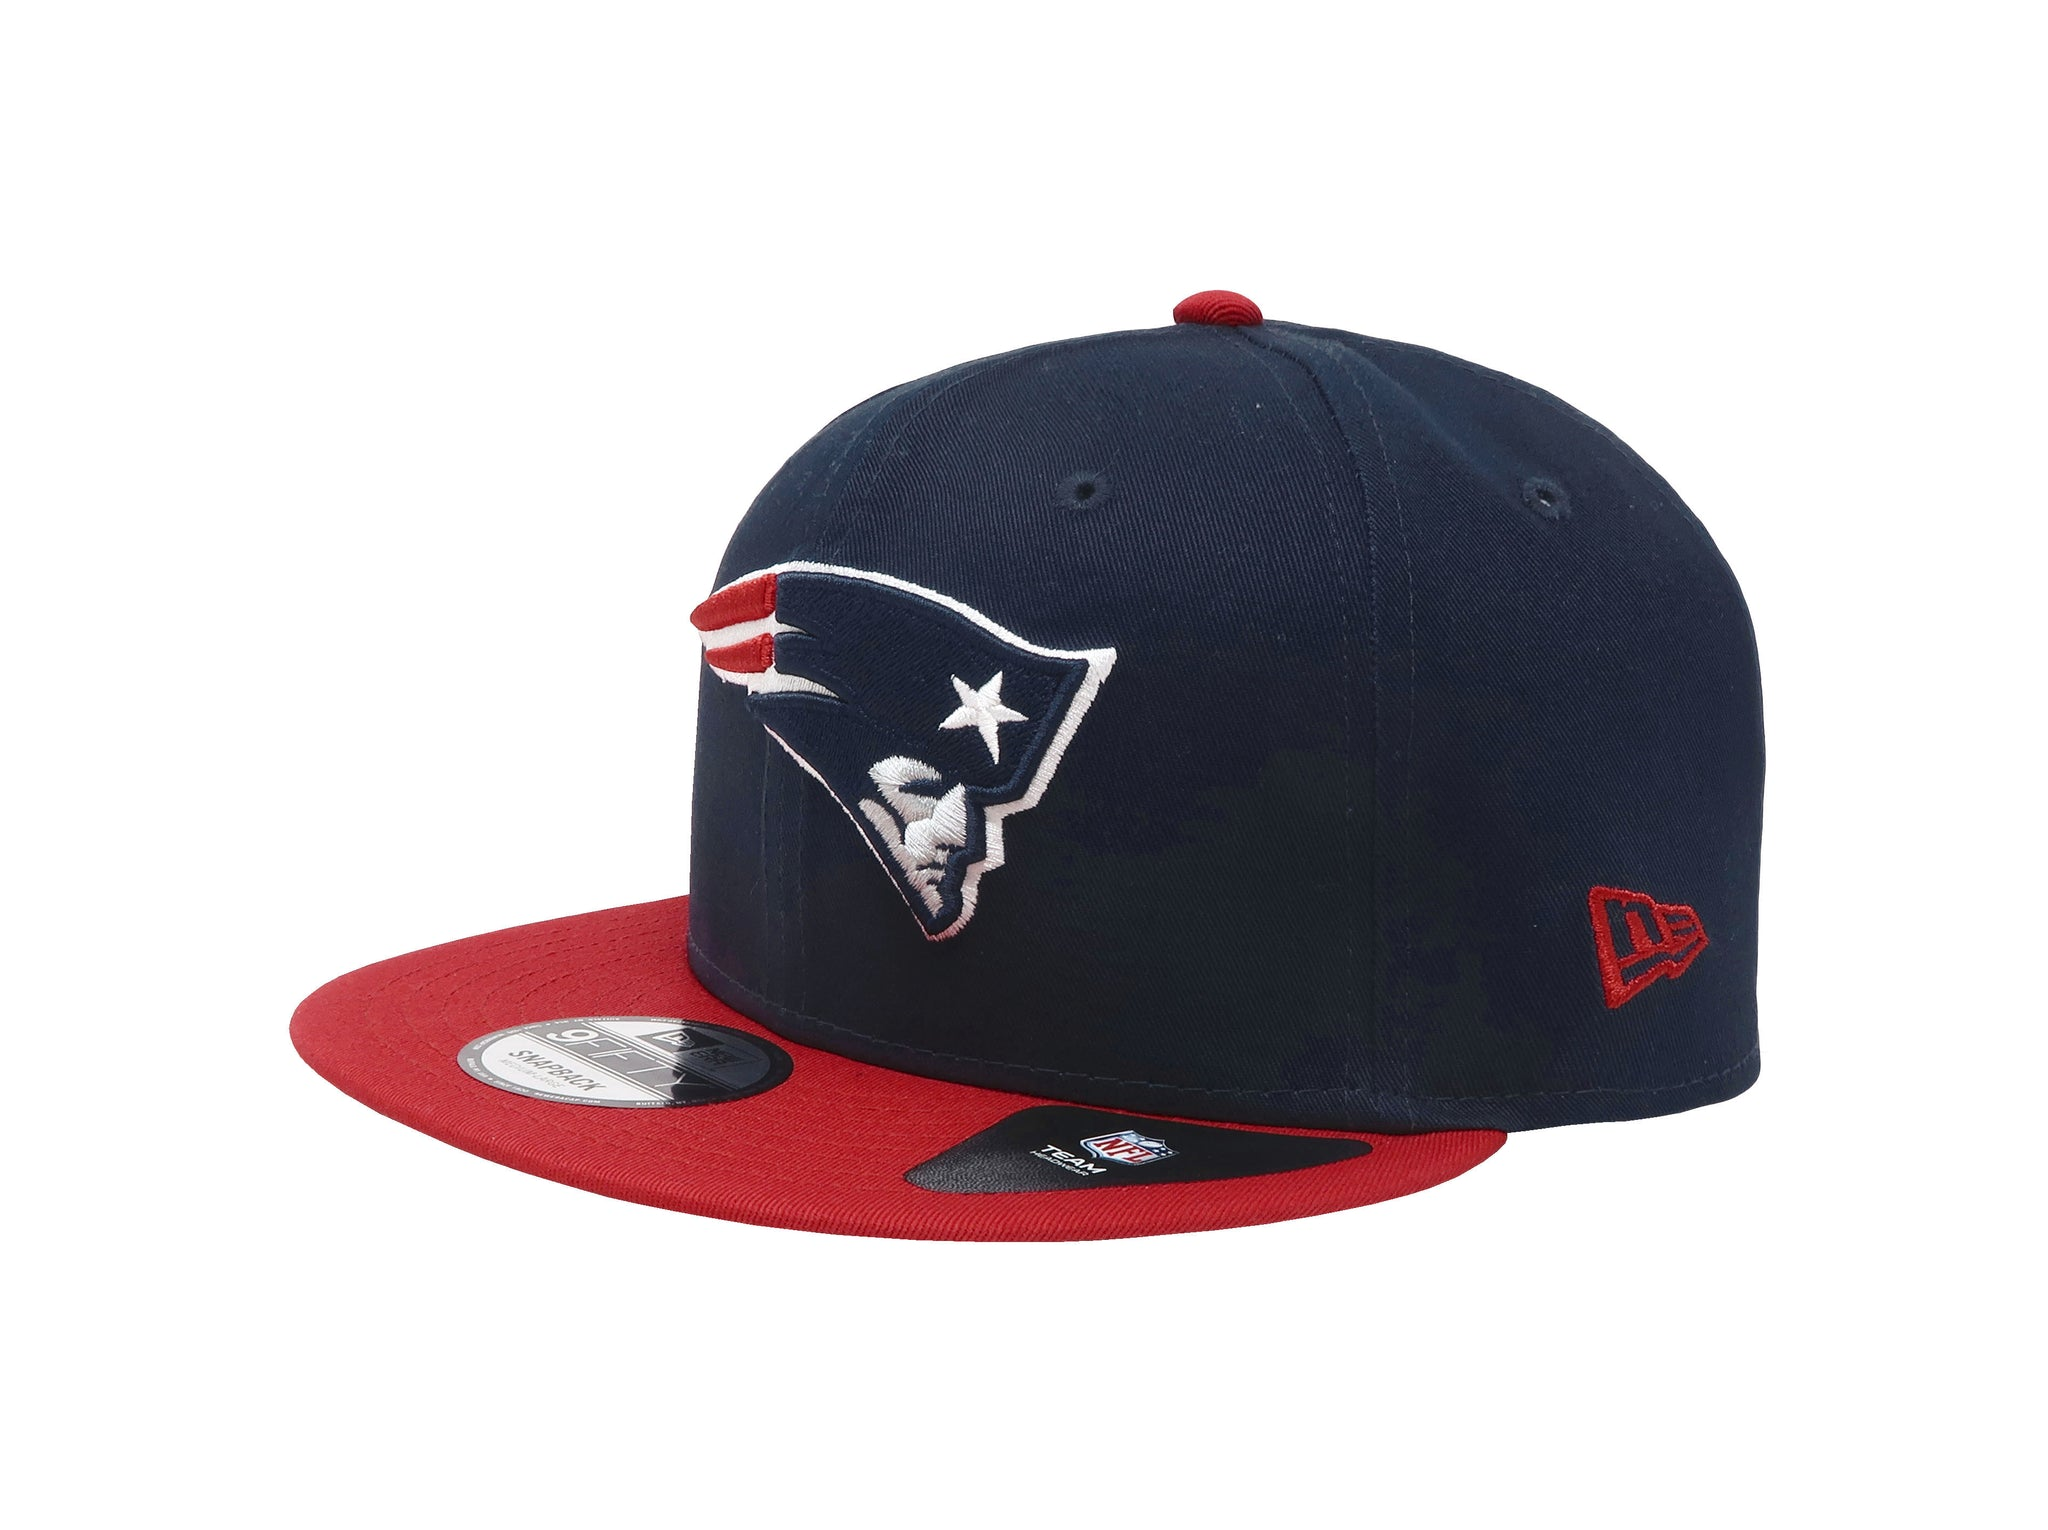 New Era 9Fifty New England Patriots Baycik Navy/Red Men Adjustable SnapBack Cap